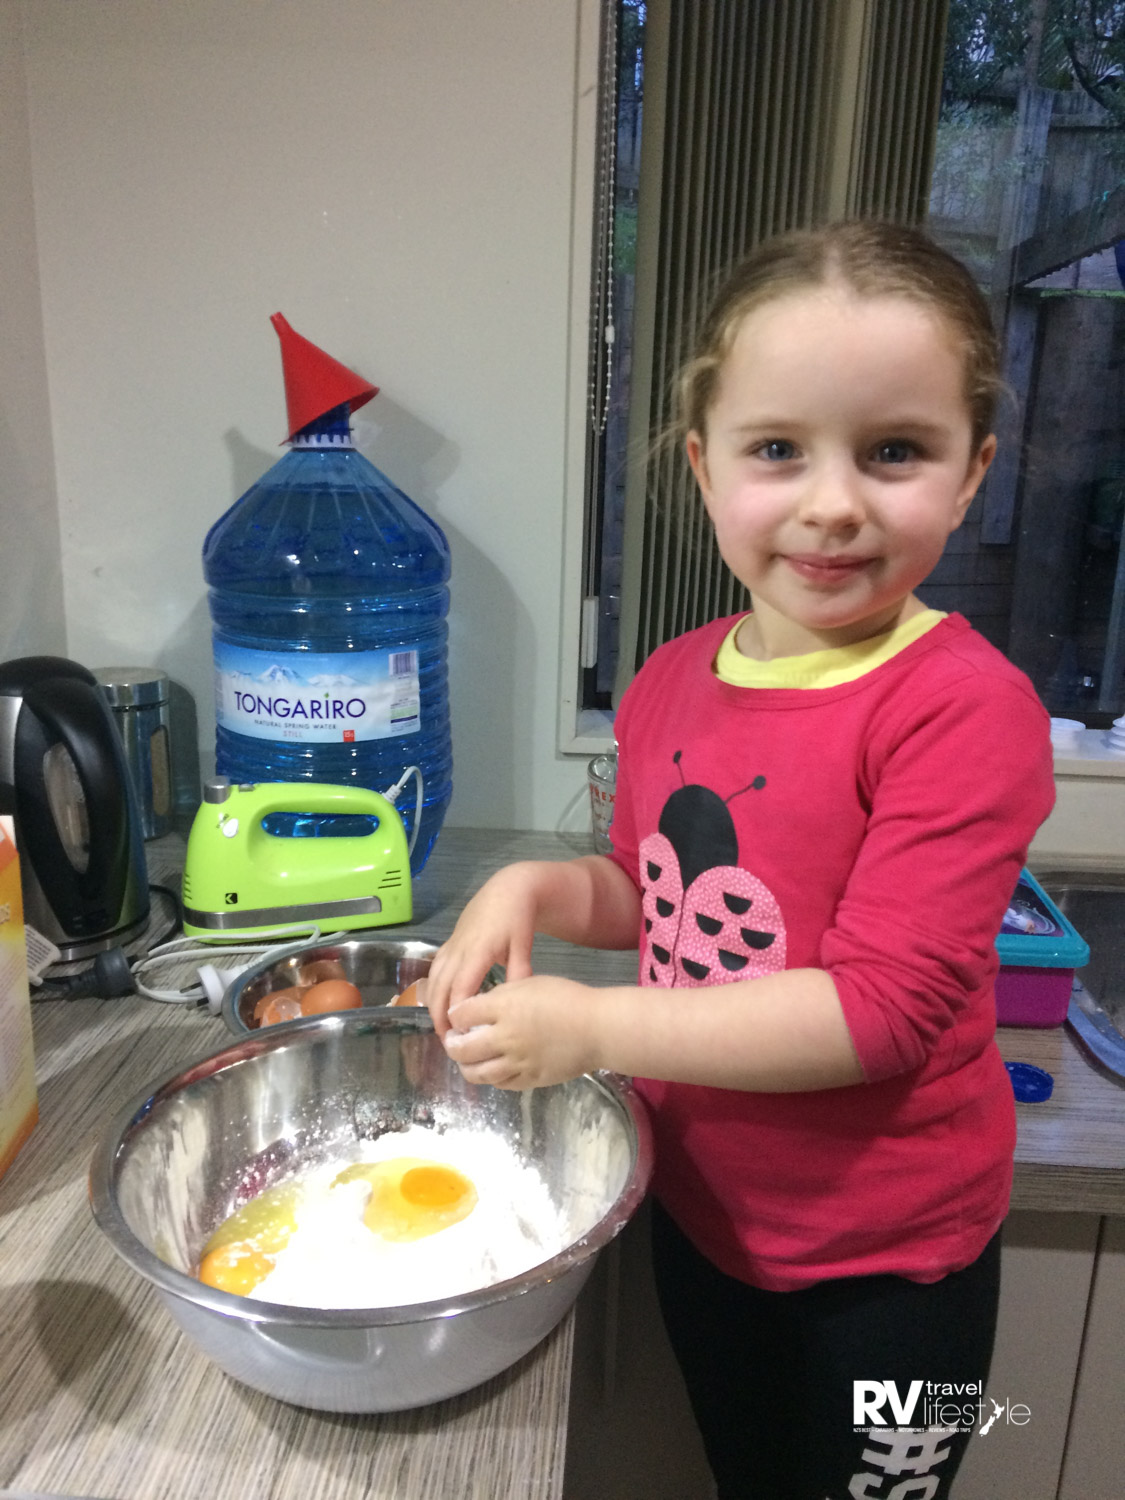 Helping bake cupcakes for her birthday, the art of baking is not lost to the youth after all – good job mum Melissa